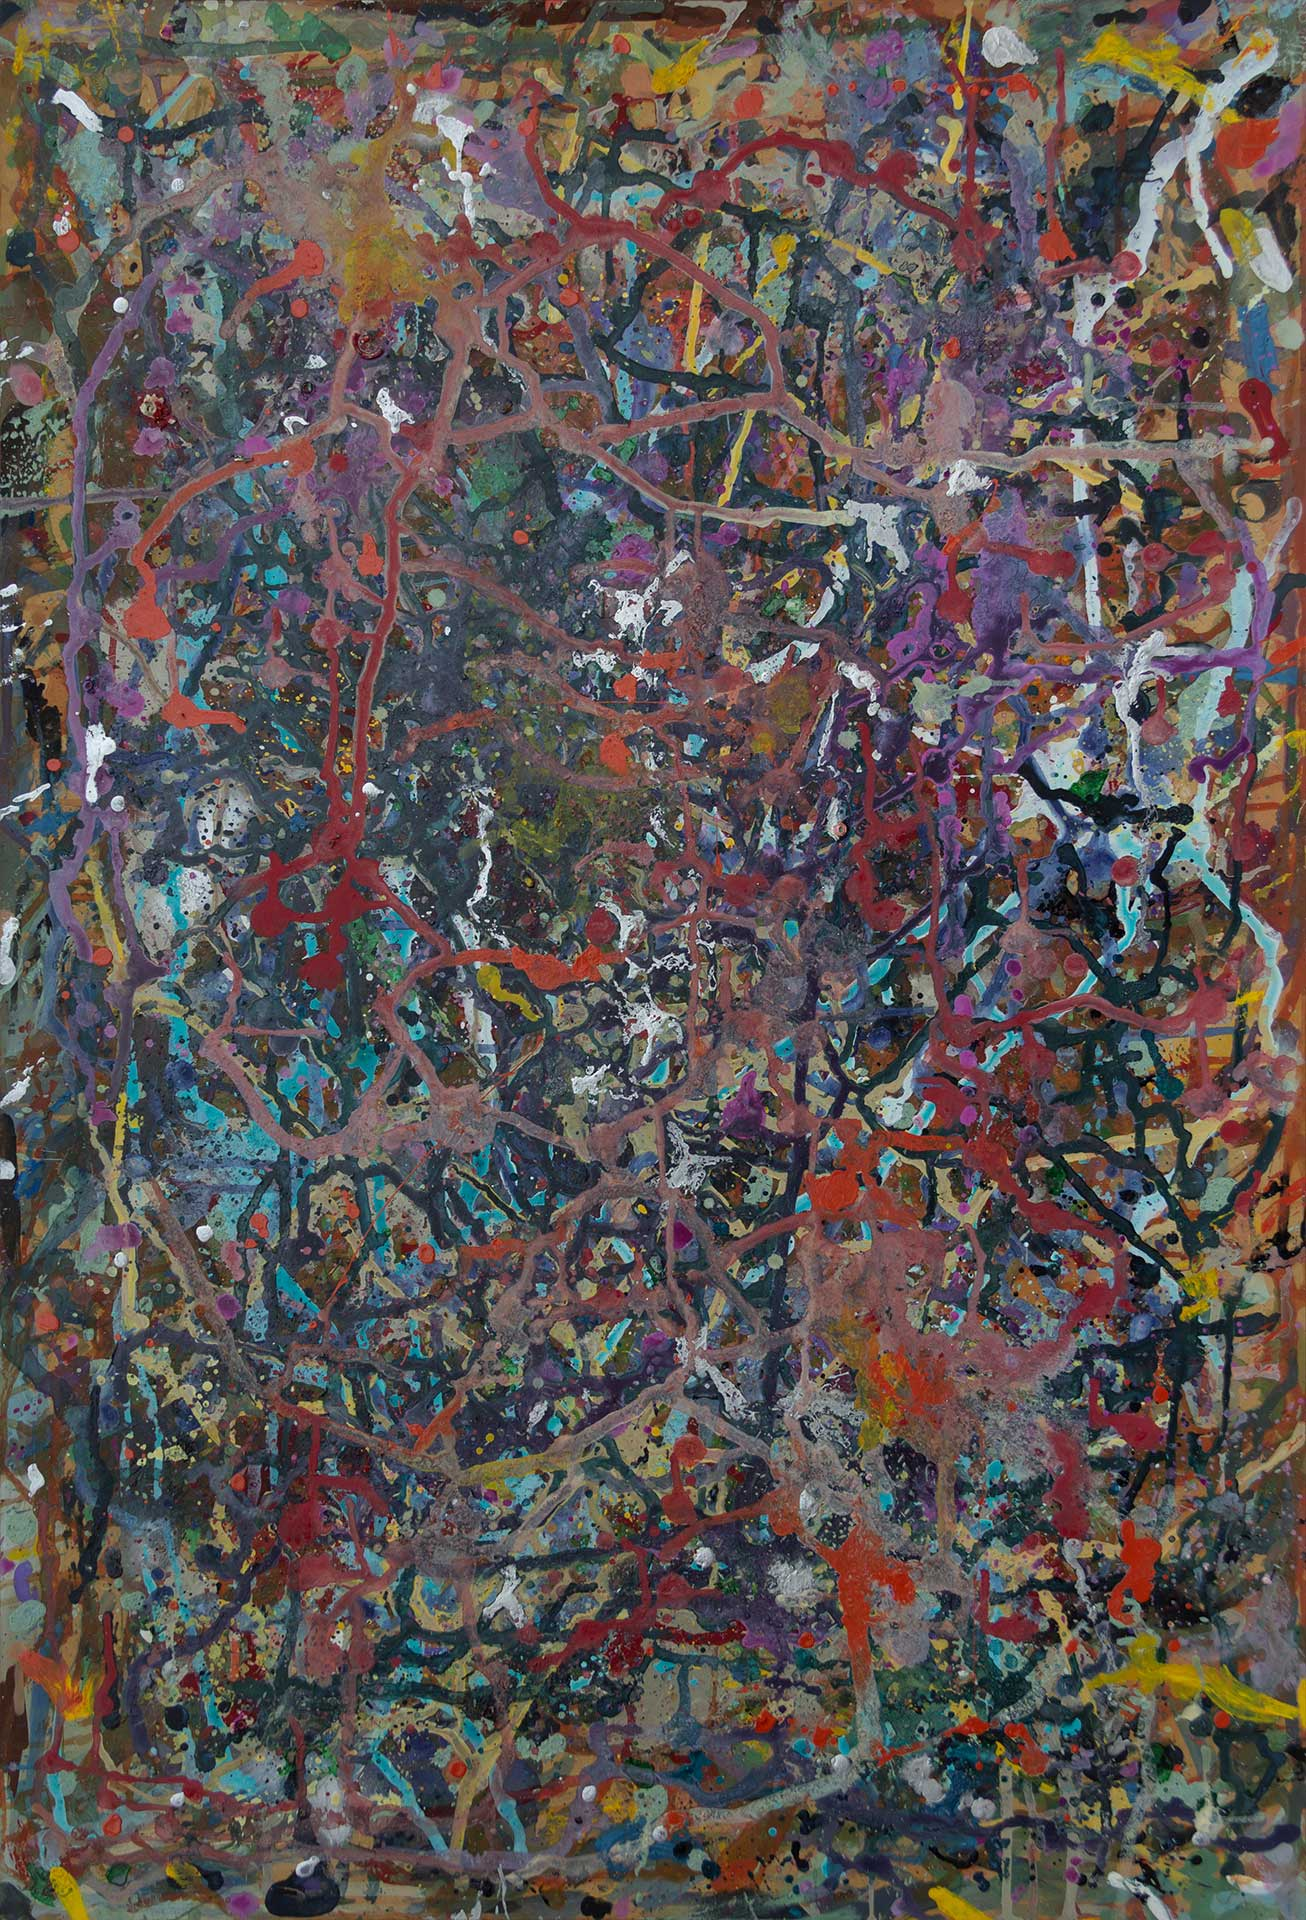 Abstract expressionism painting - Fight of the aliens #2